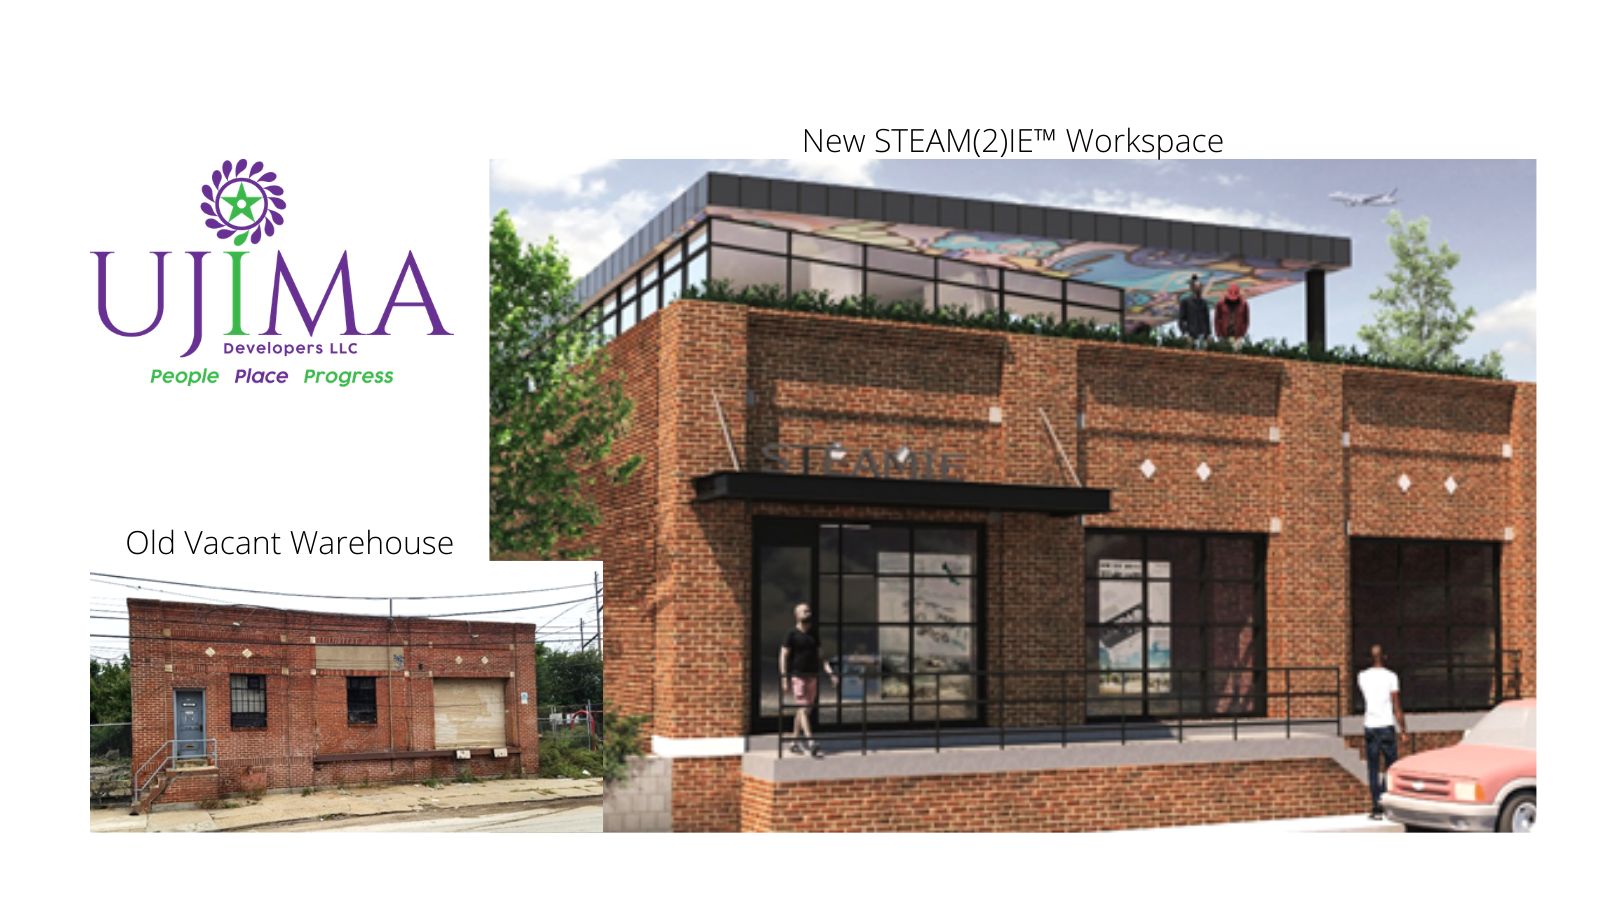 Ujima Developers, LLC Begins Developing STEAM(2)IE™ Workspaces, a Vacant Warehouse Turned Makerspace in West Philadelphia